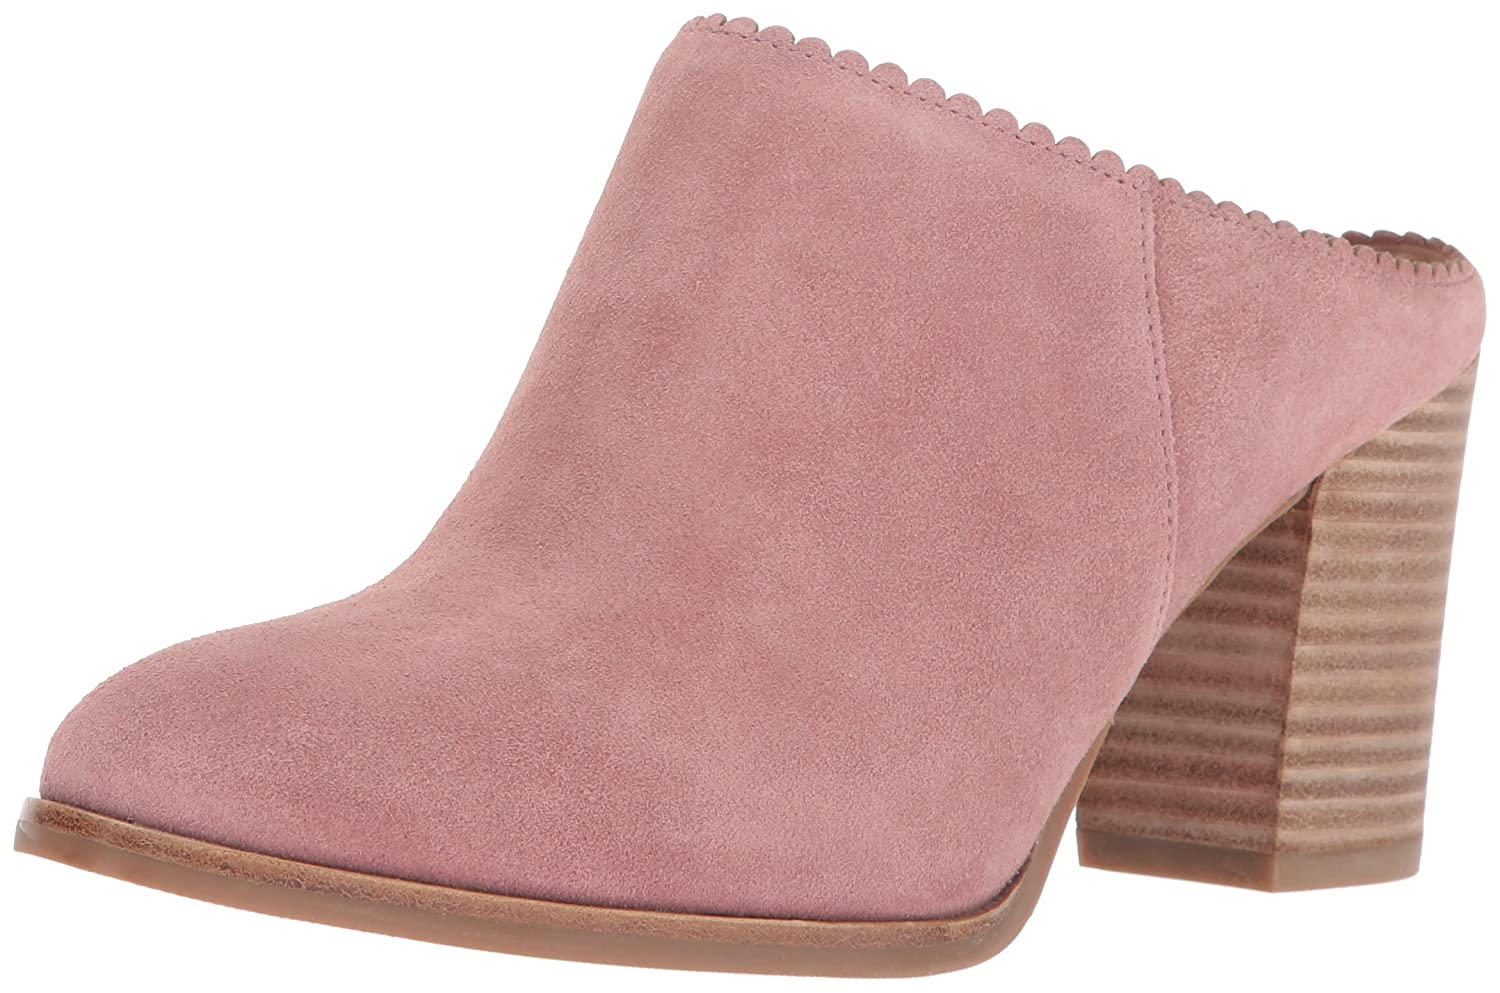 Via Spiga Women's Sophia Backless Bootie Ankle Boot B01NBW3D97 8.5 B(M) US|Dusty Rose Suede